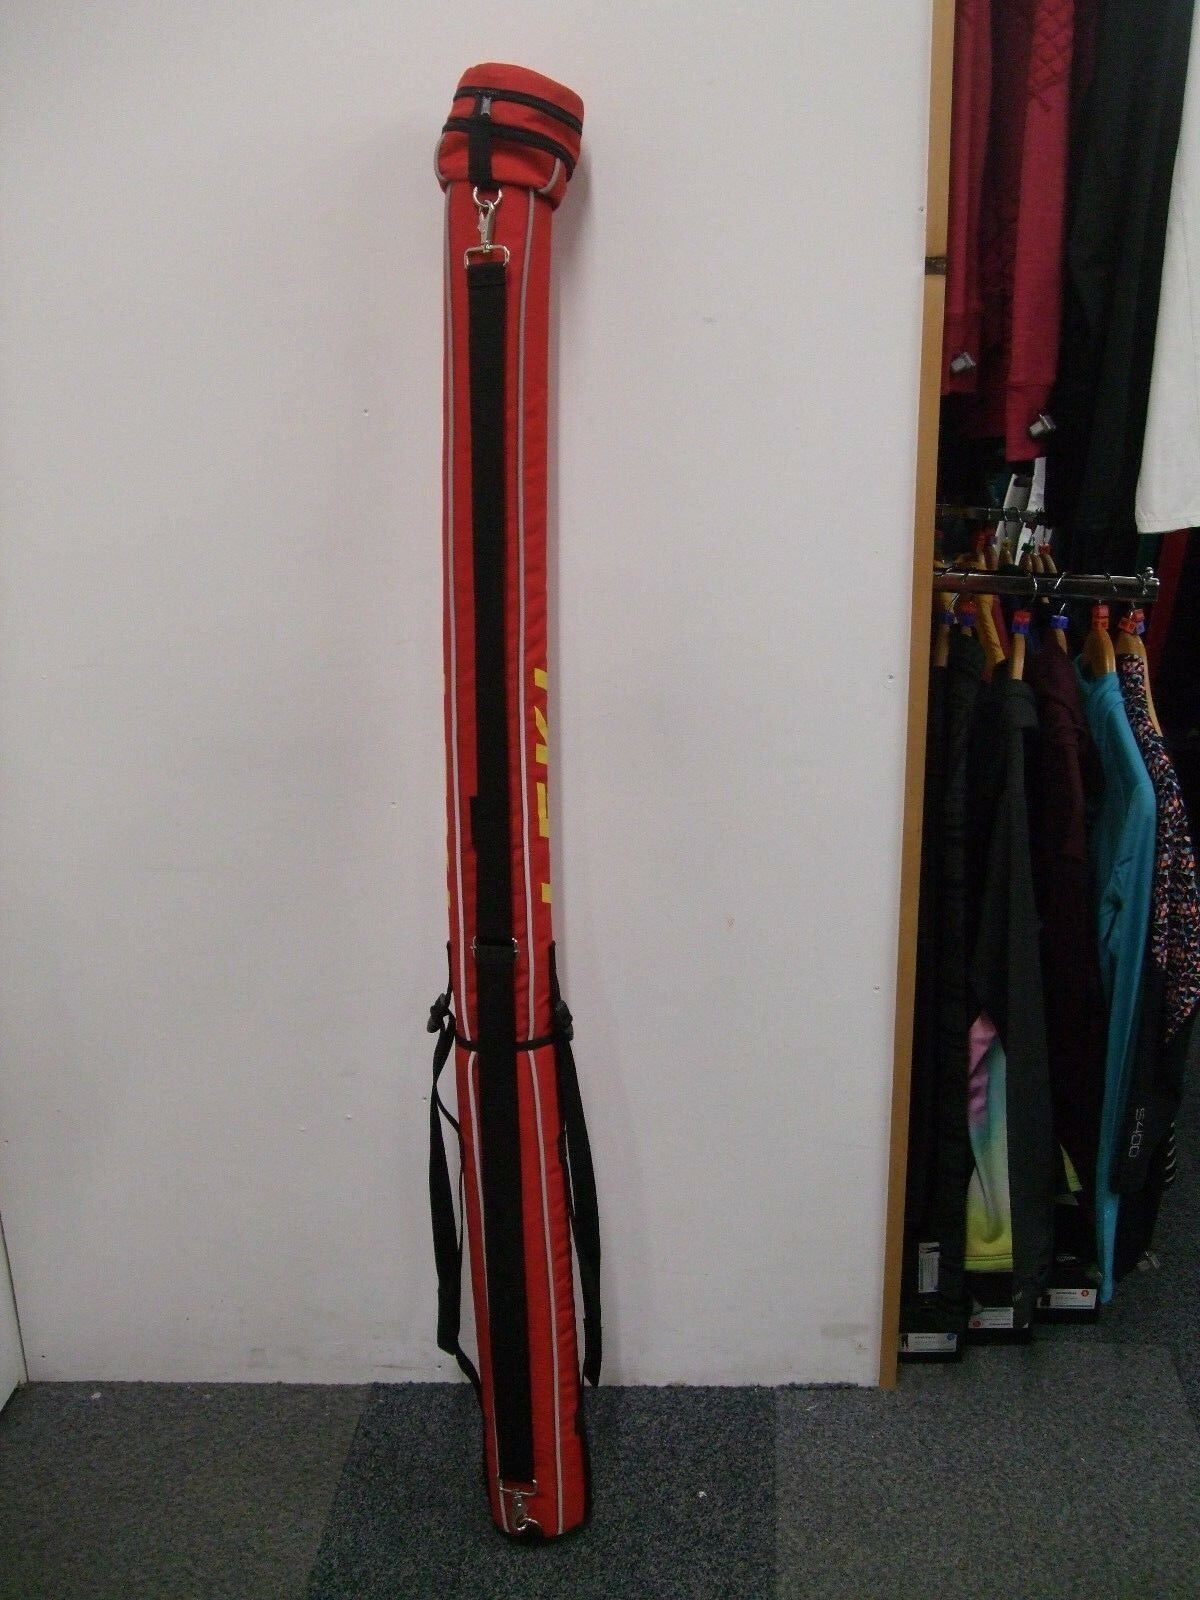 Leki Cross Cross Cross Country, Nordic, Langlauf ski pole carrying bag fab4cc